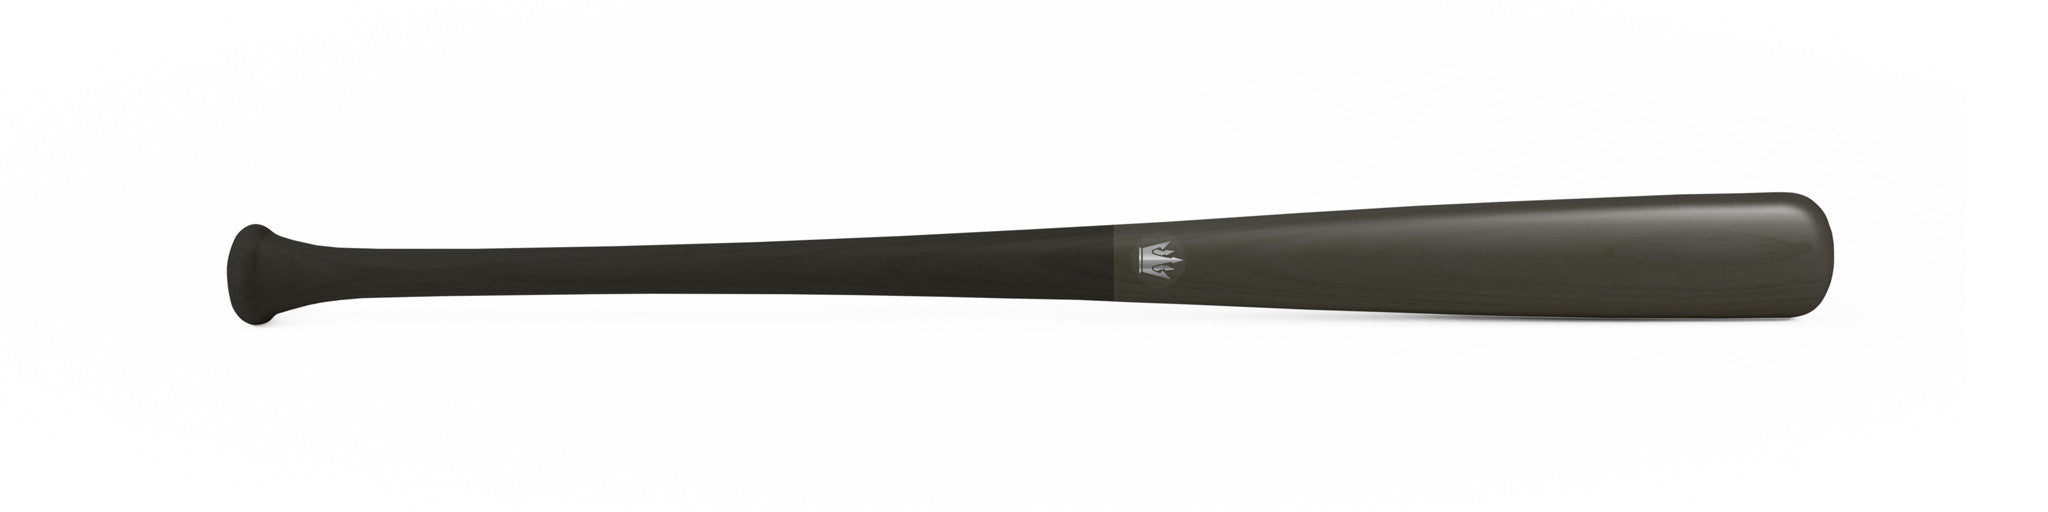 Wood bat - Ash model Y271 Black Charcoal - 25